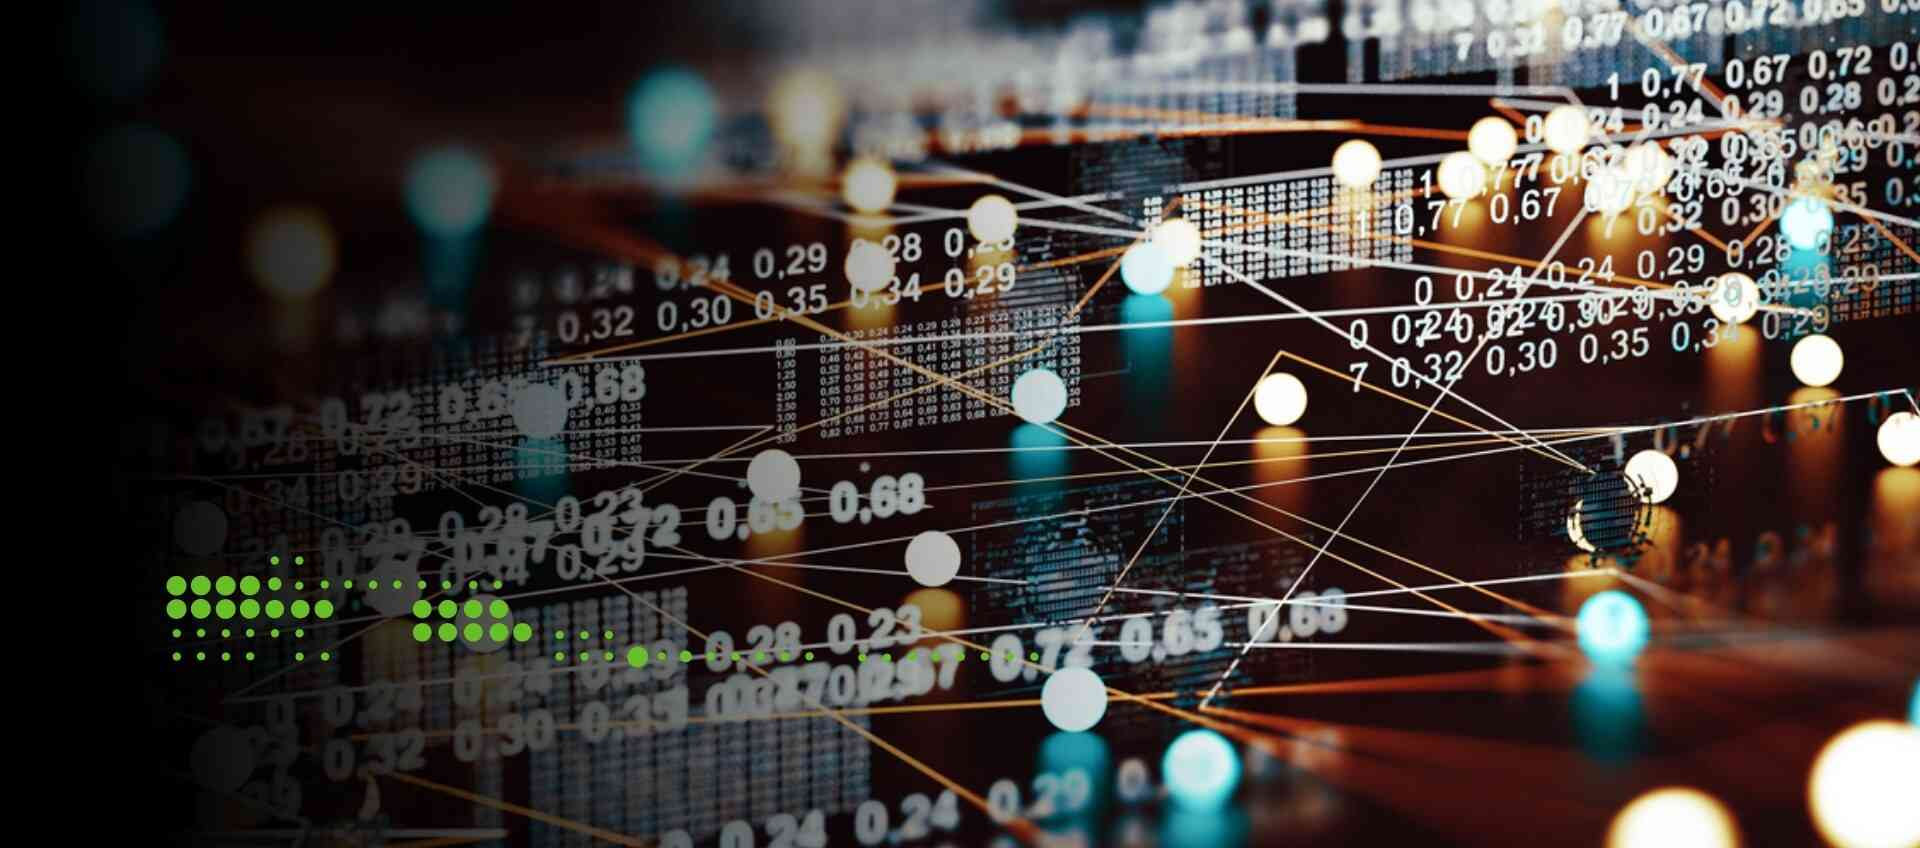 WHY EFFECTIVE DATA MANAGEMENT IS SO CRITICAL TO BUSINESS SUCCESS